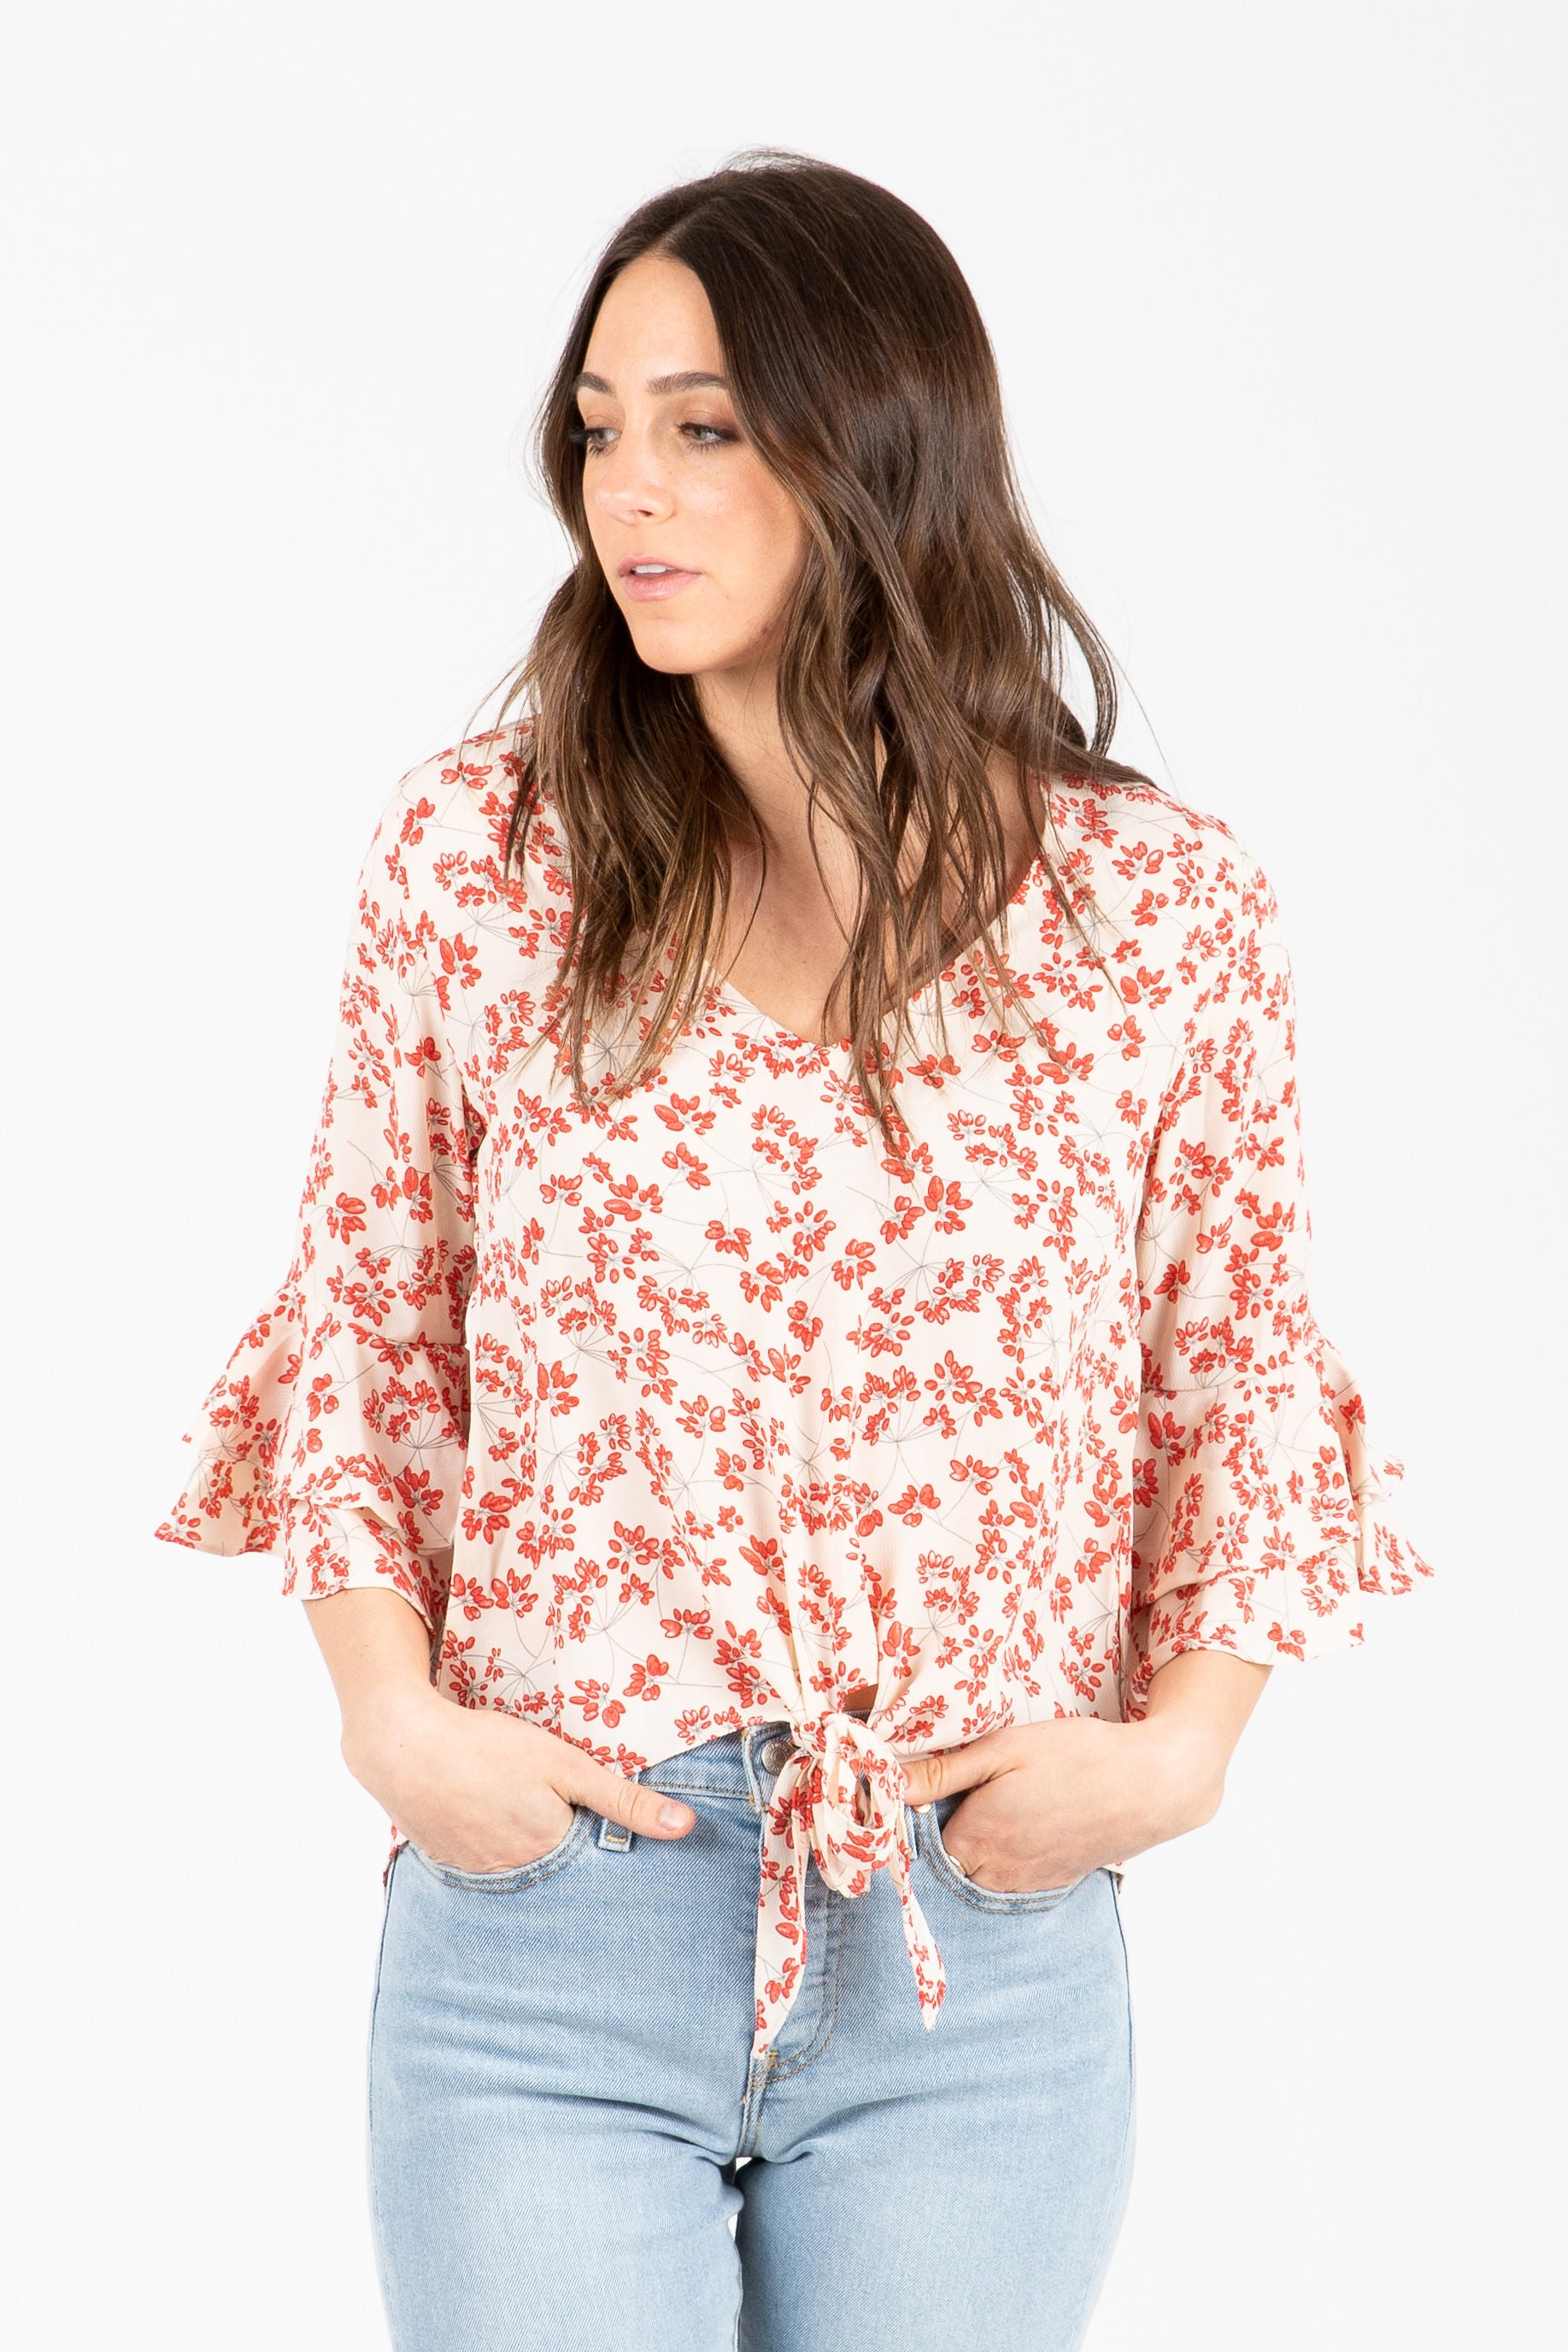 The Twinks Tie Front Floral Blouse in Poppy